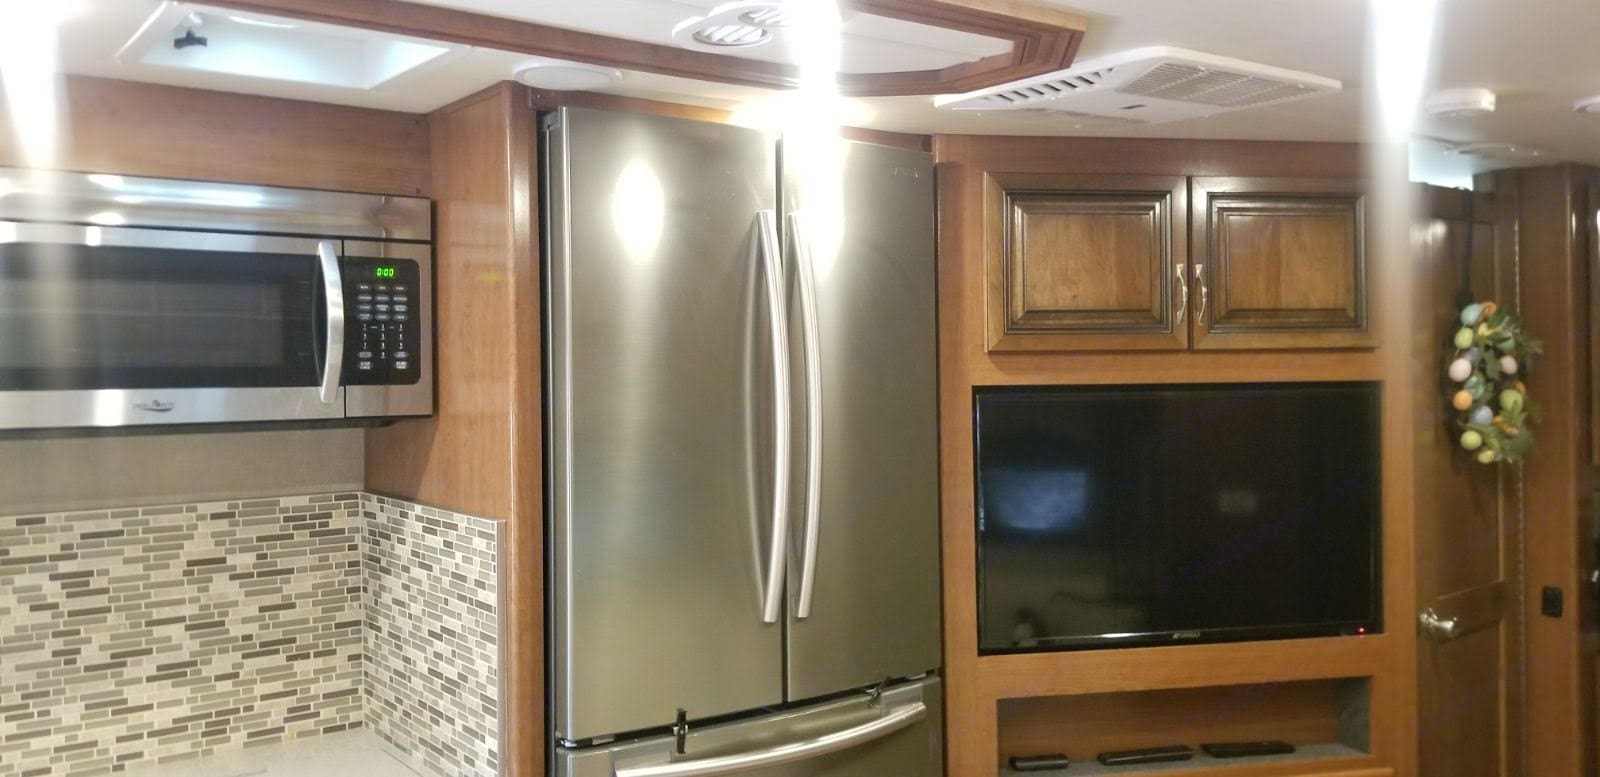 Convection/Microwave oven, Full size Fridge. Holiday Rambler Vacationer 2017